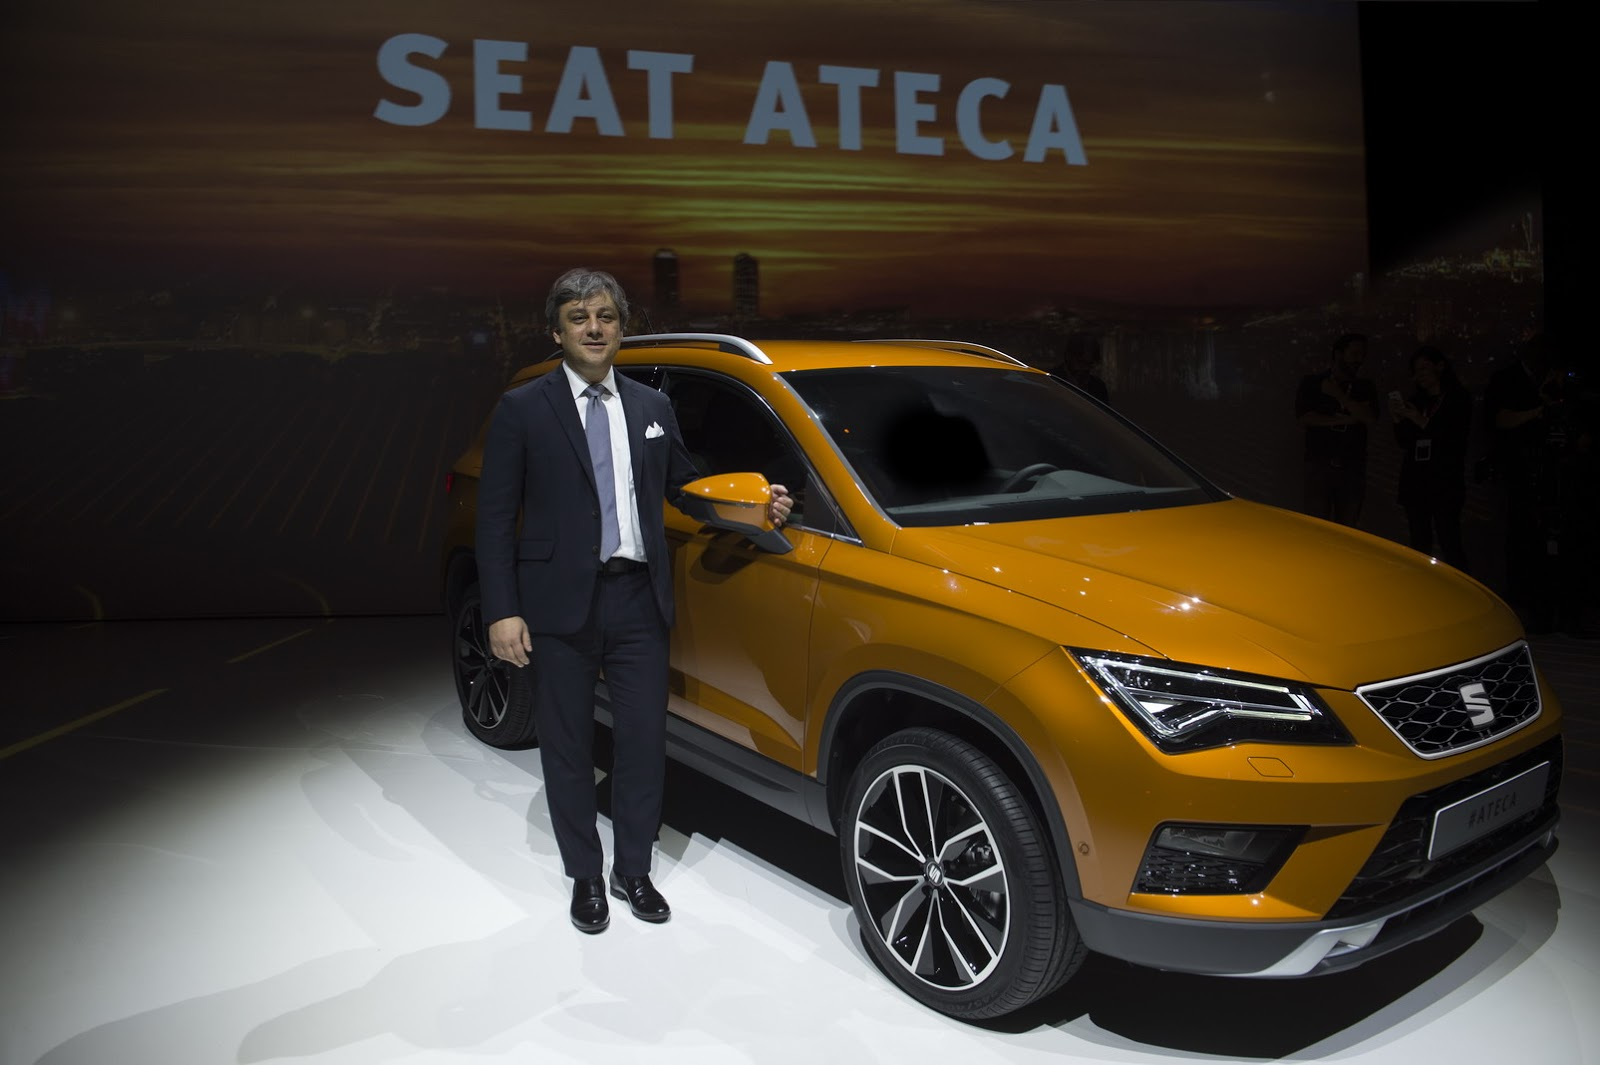 the seat ateca suv debuts with led lights and up to 190 hp autoevolution. Black Bedroom Furniture Sets. Home Design Ideas